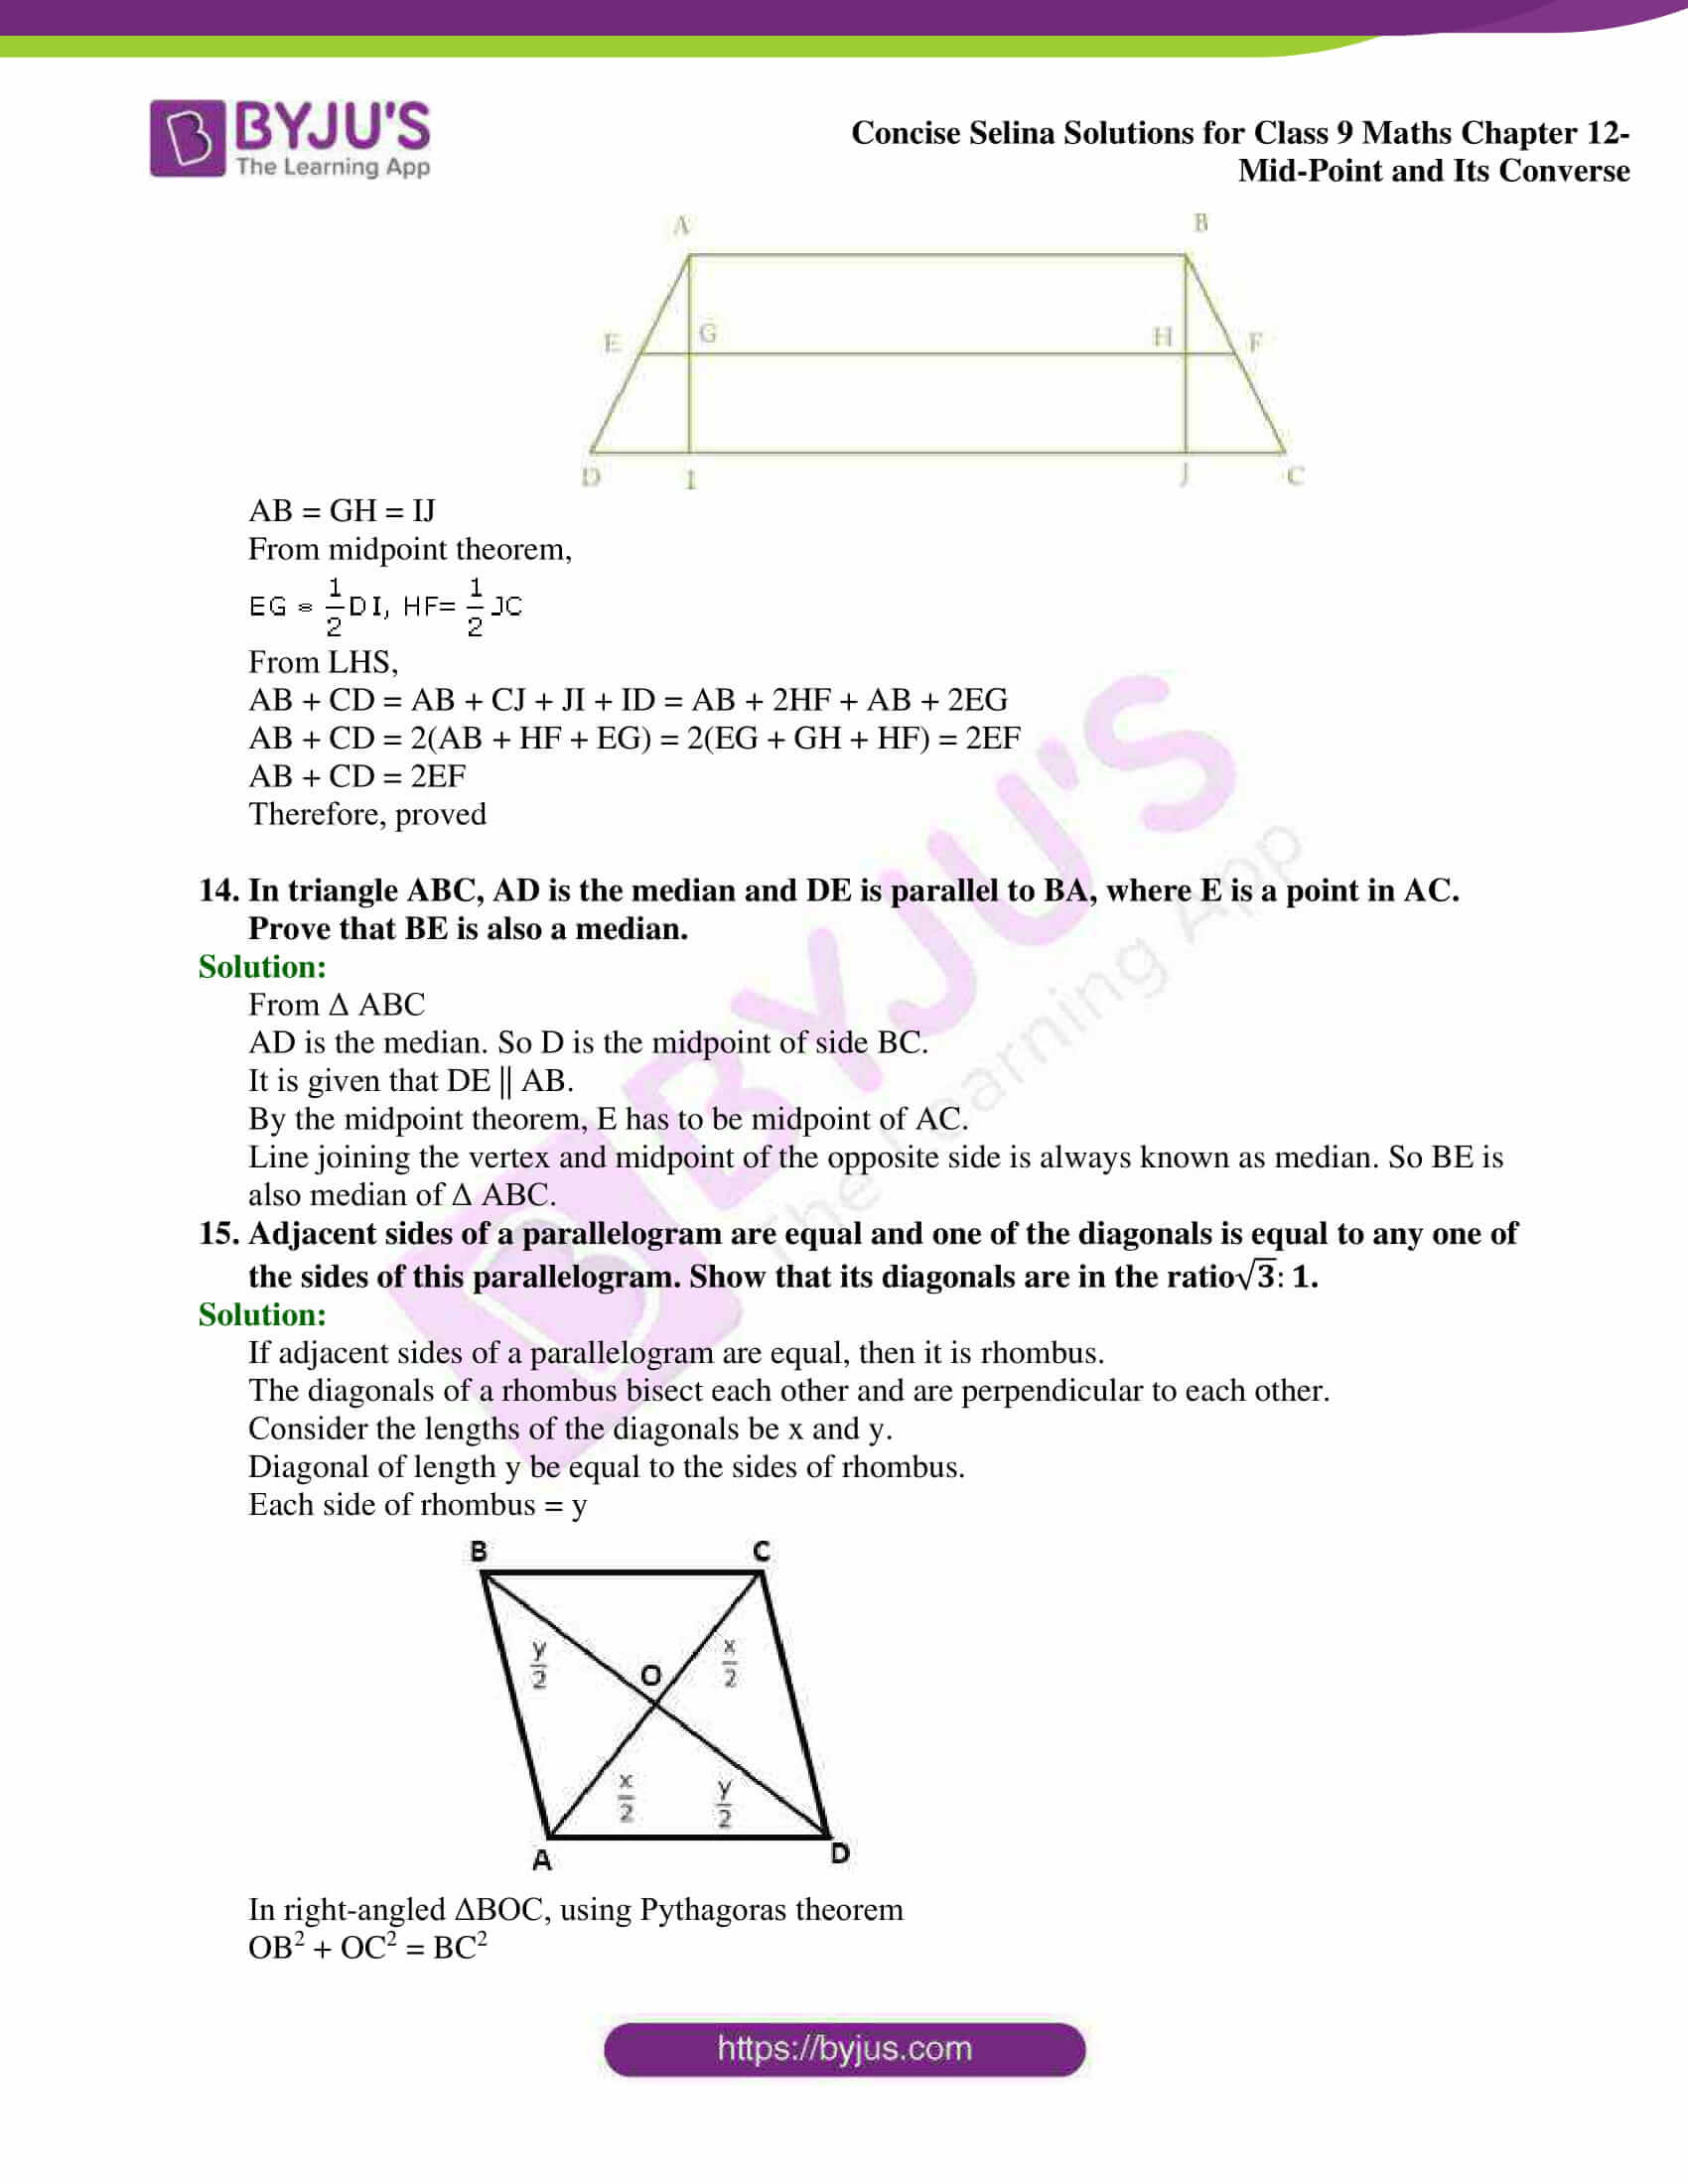 selina Solutions for Class 9 Maths Chapter 12 21